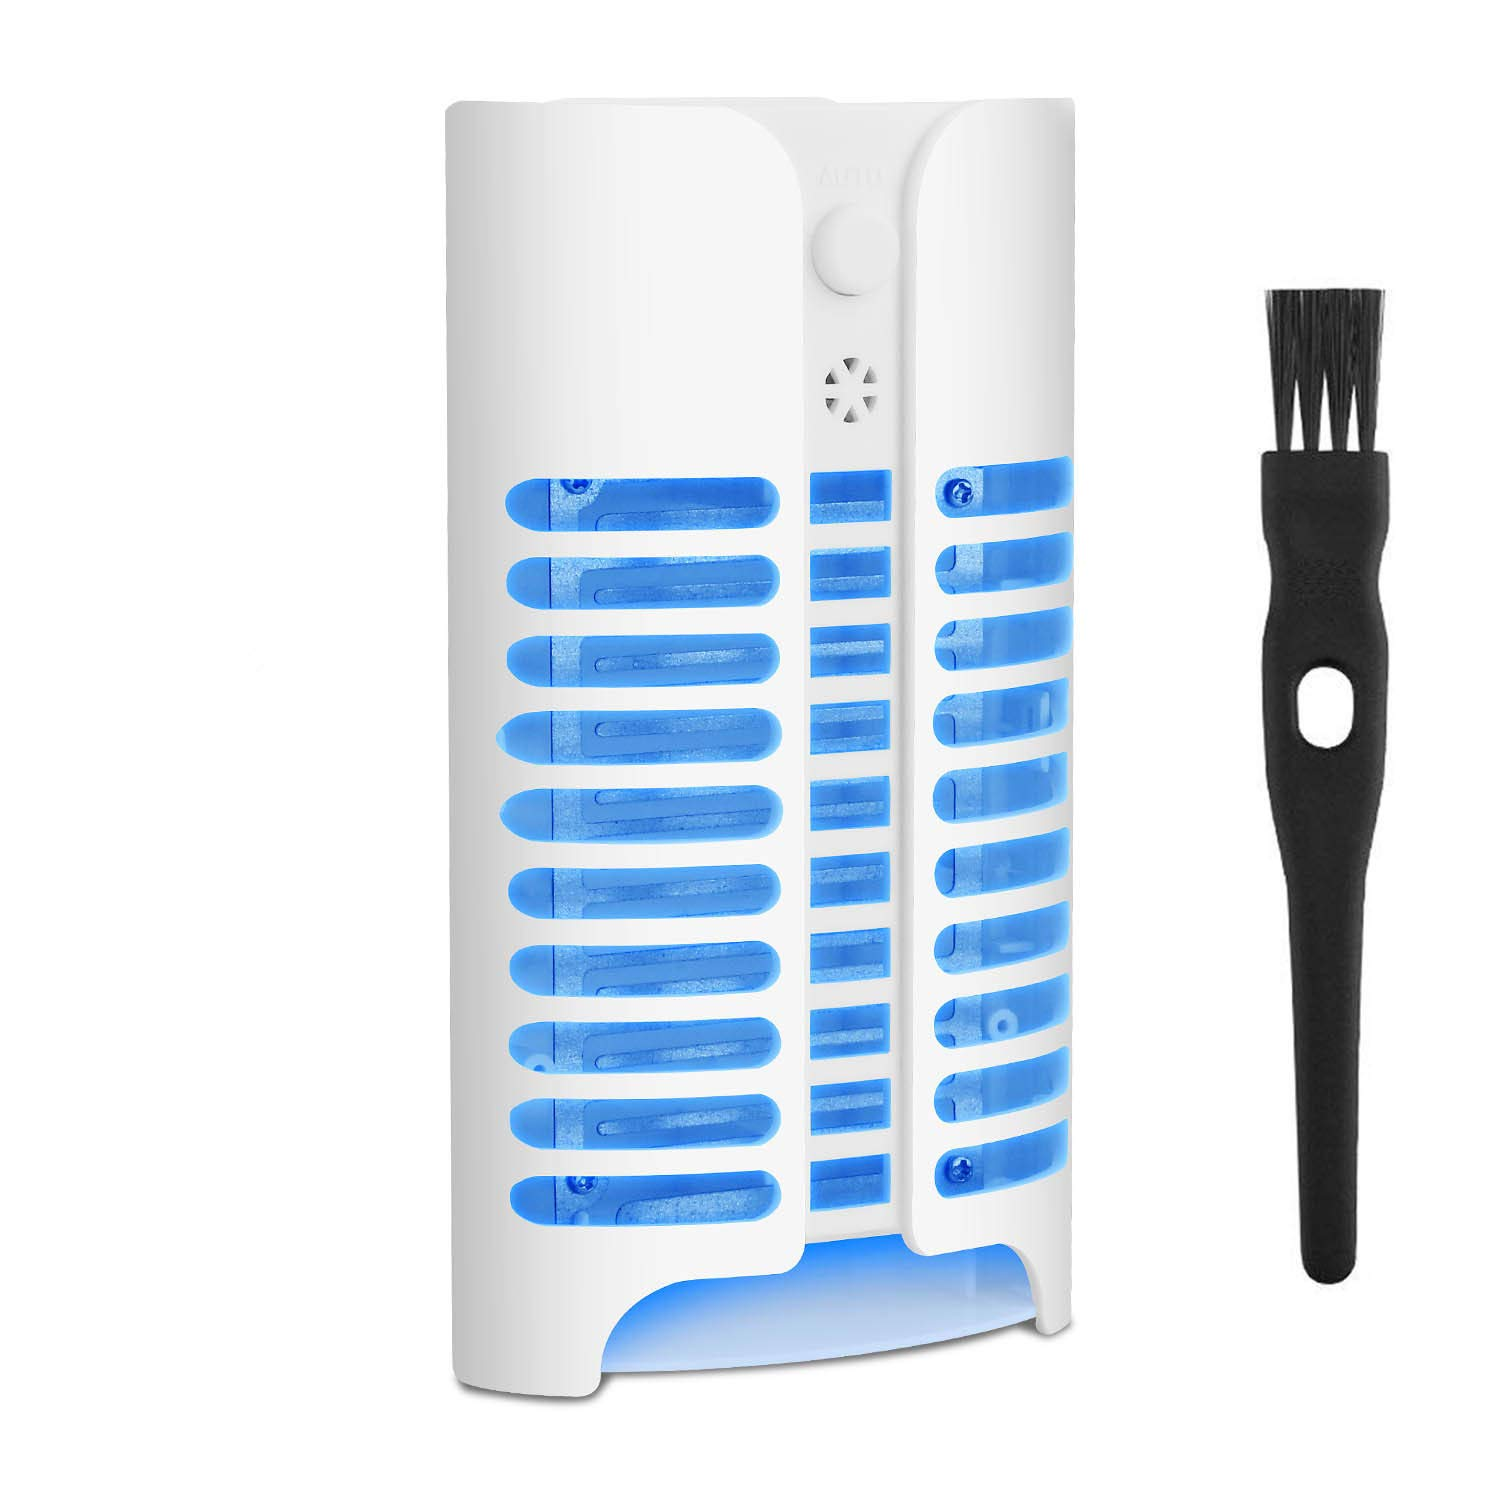 Sherryli Bug Zapper Light, Mosquito Insect Killer, 4W Plug in Electric Indoor Mosquito Trap for Home Yard Garden Patio Office Store